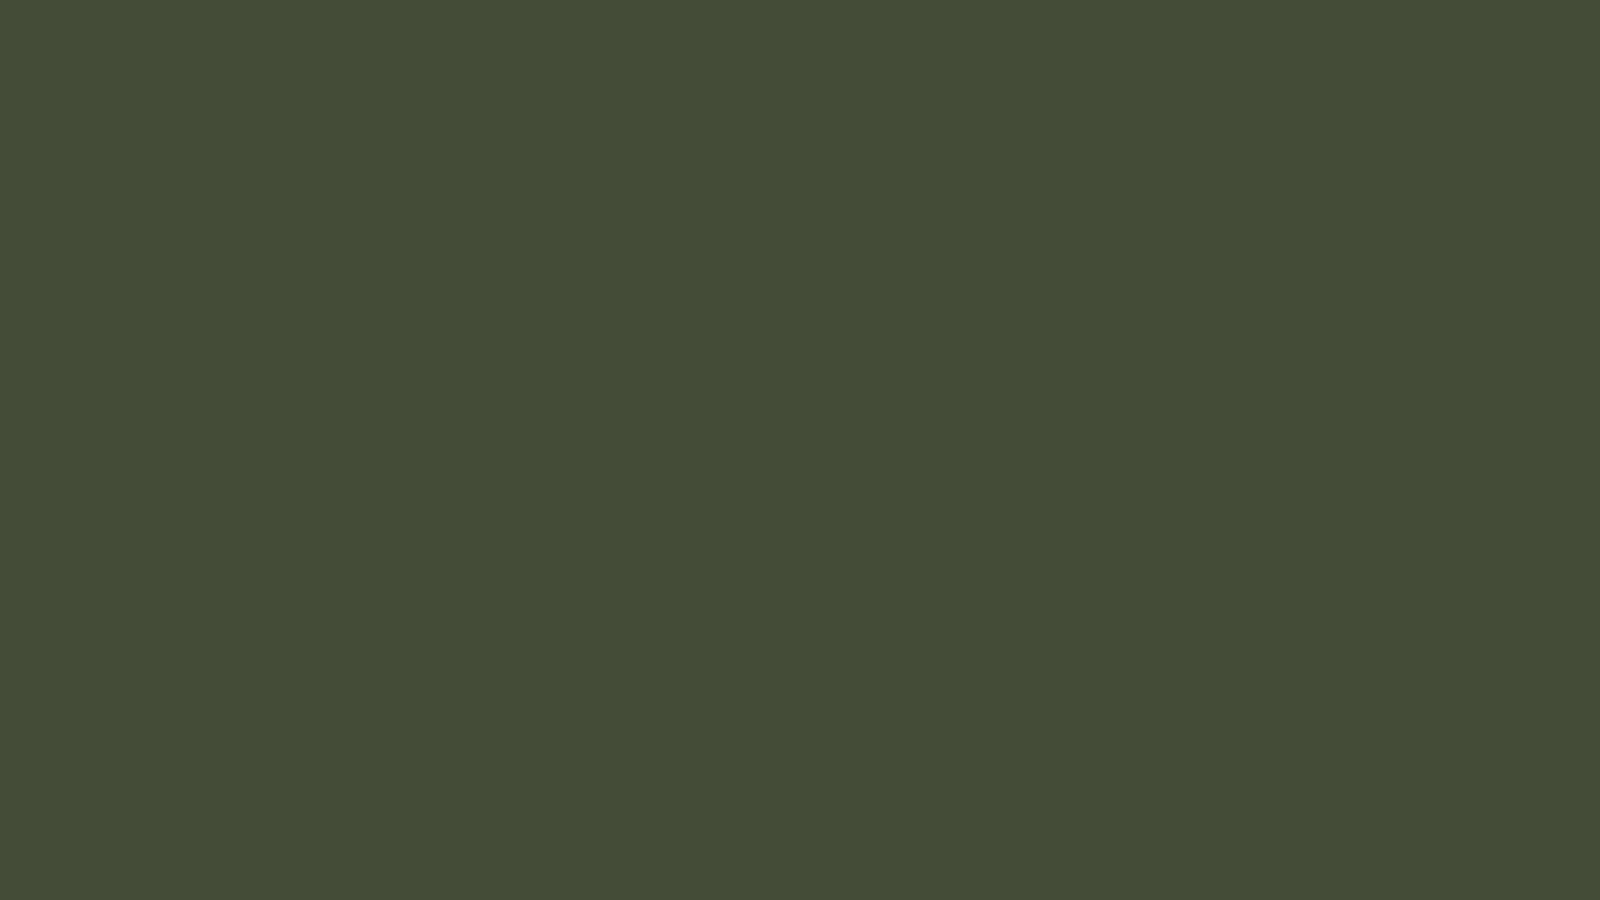 1600x900 Rifle Green Solid Color Background